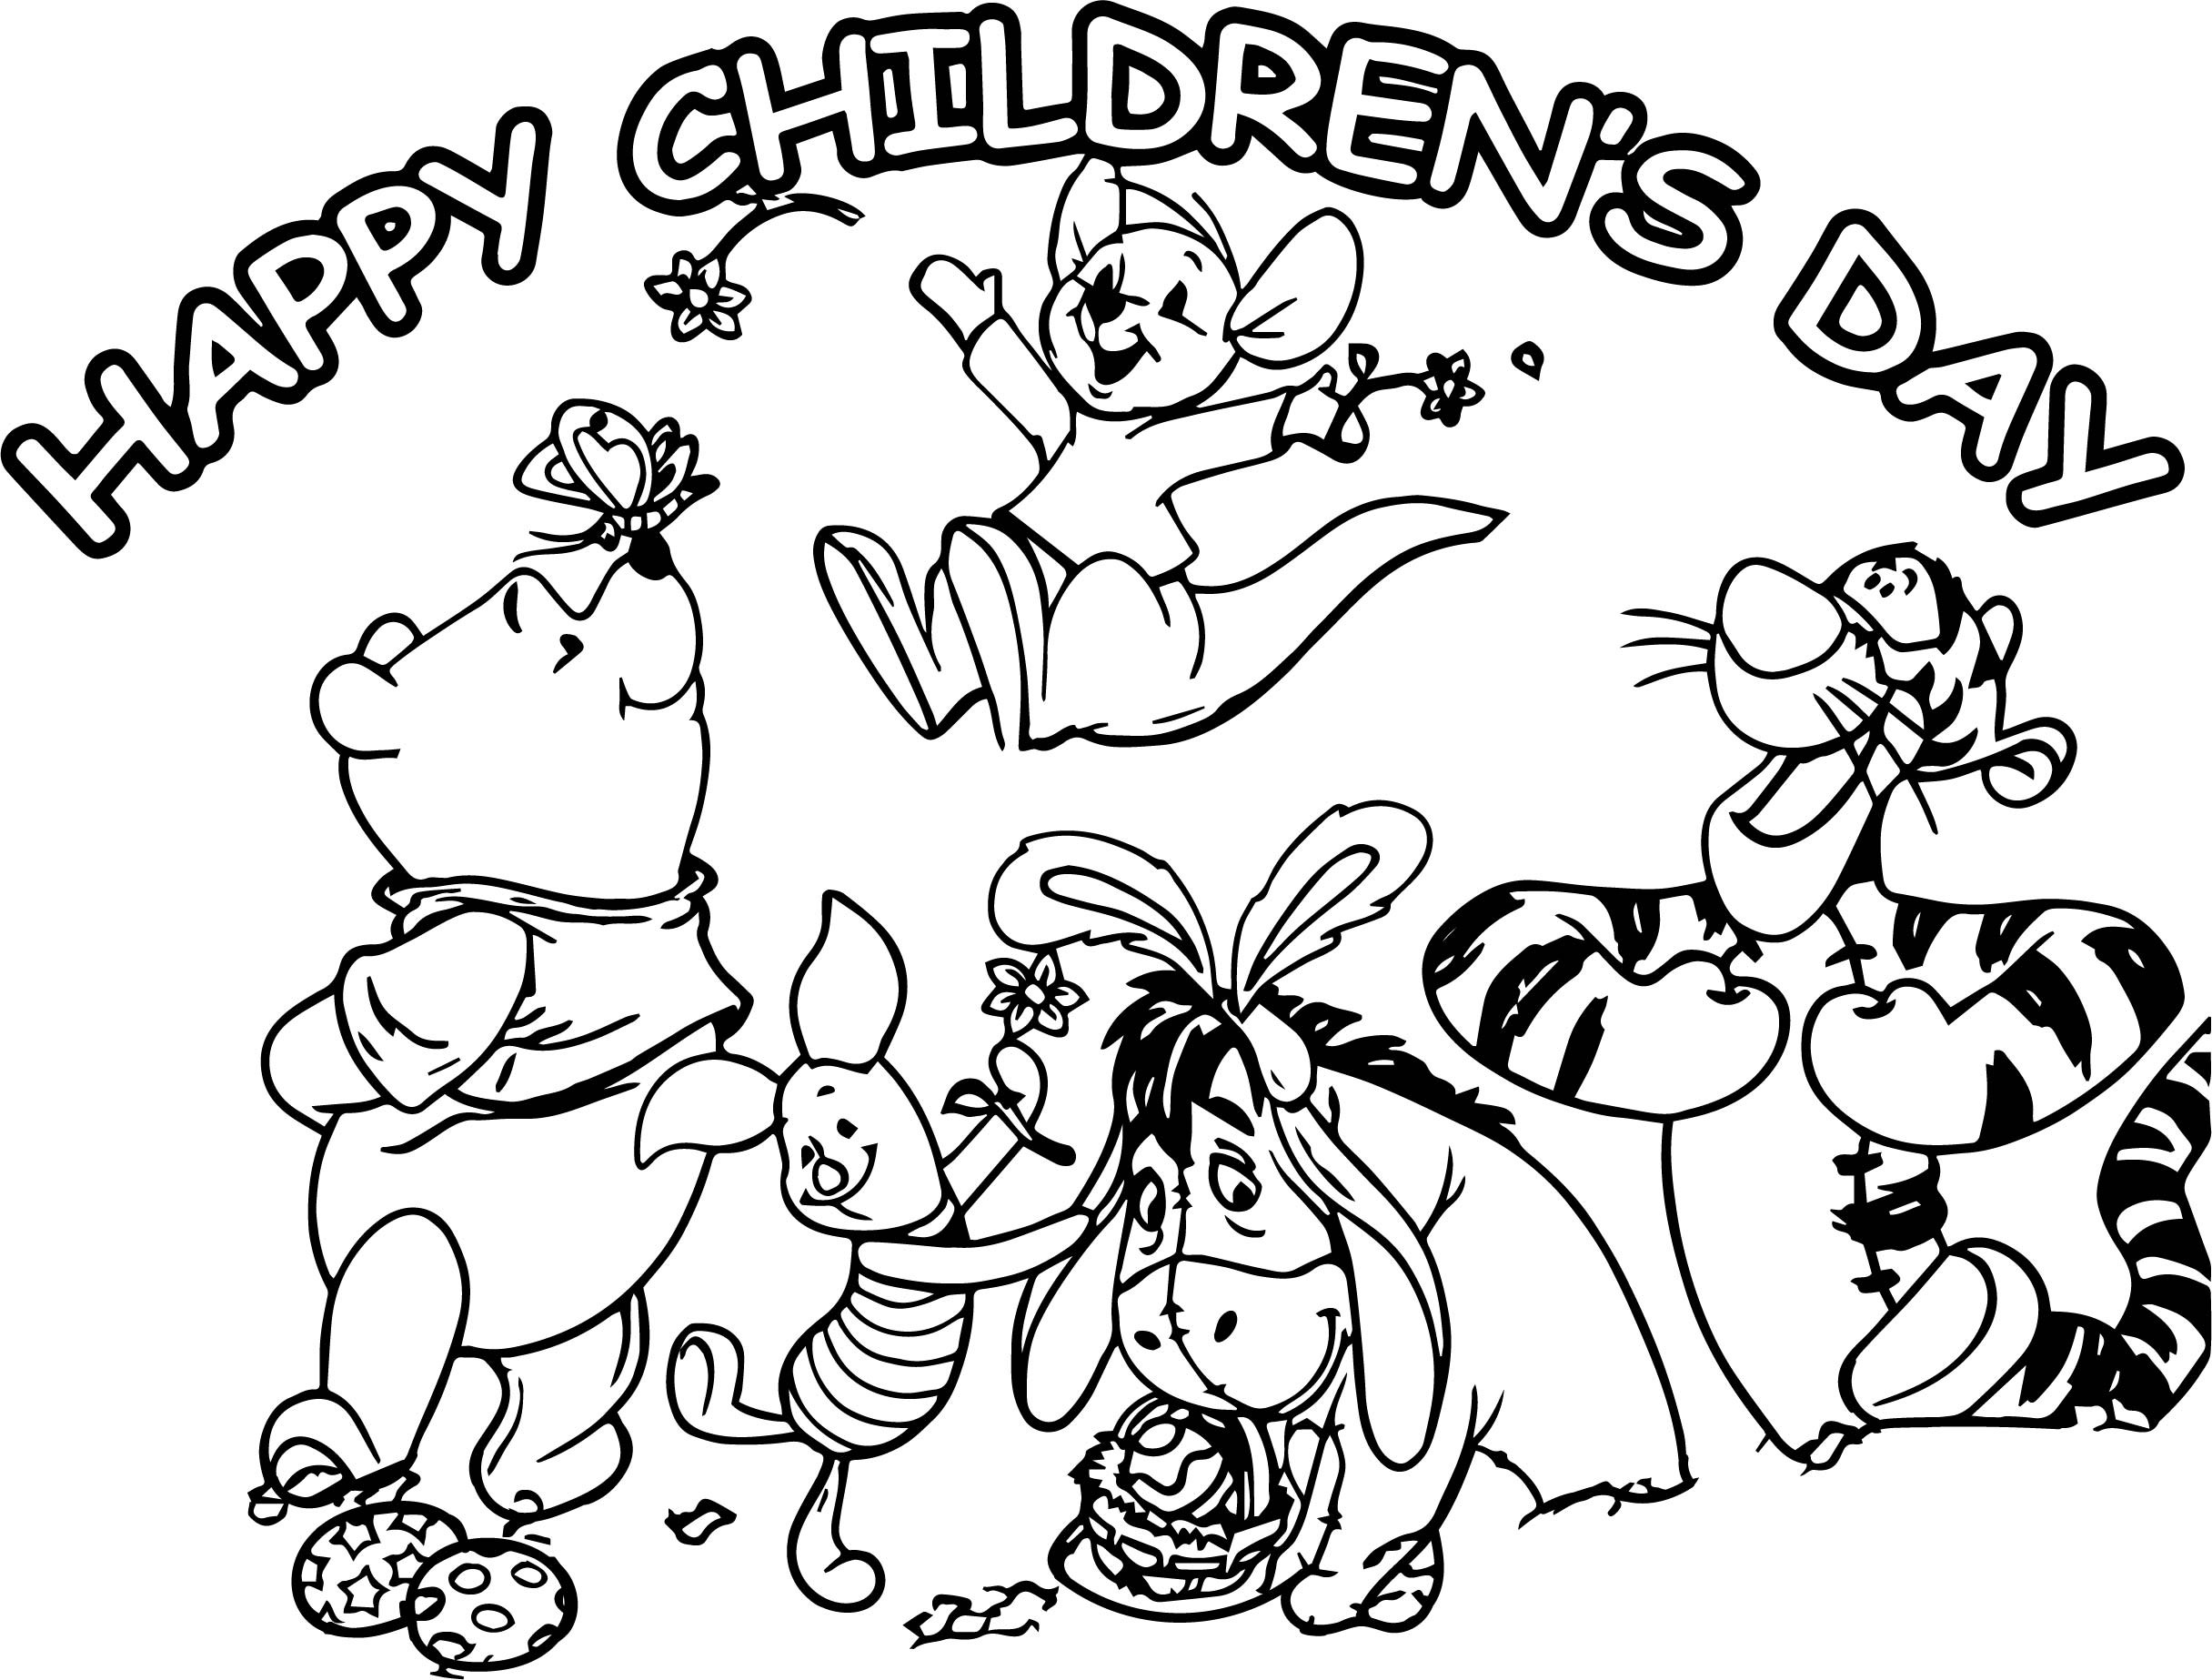 2432x1847 Coloring Pages For Childrens Day Luxury Happy Childrens Day Animal